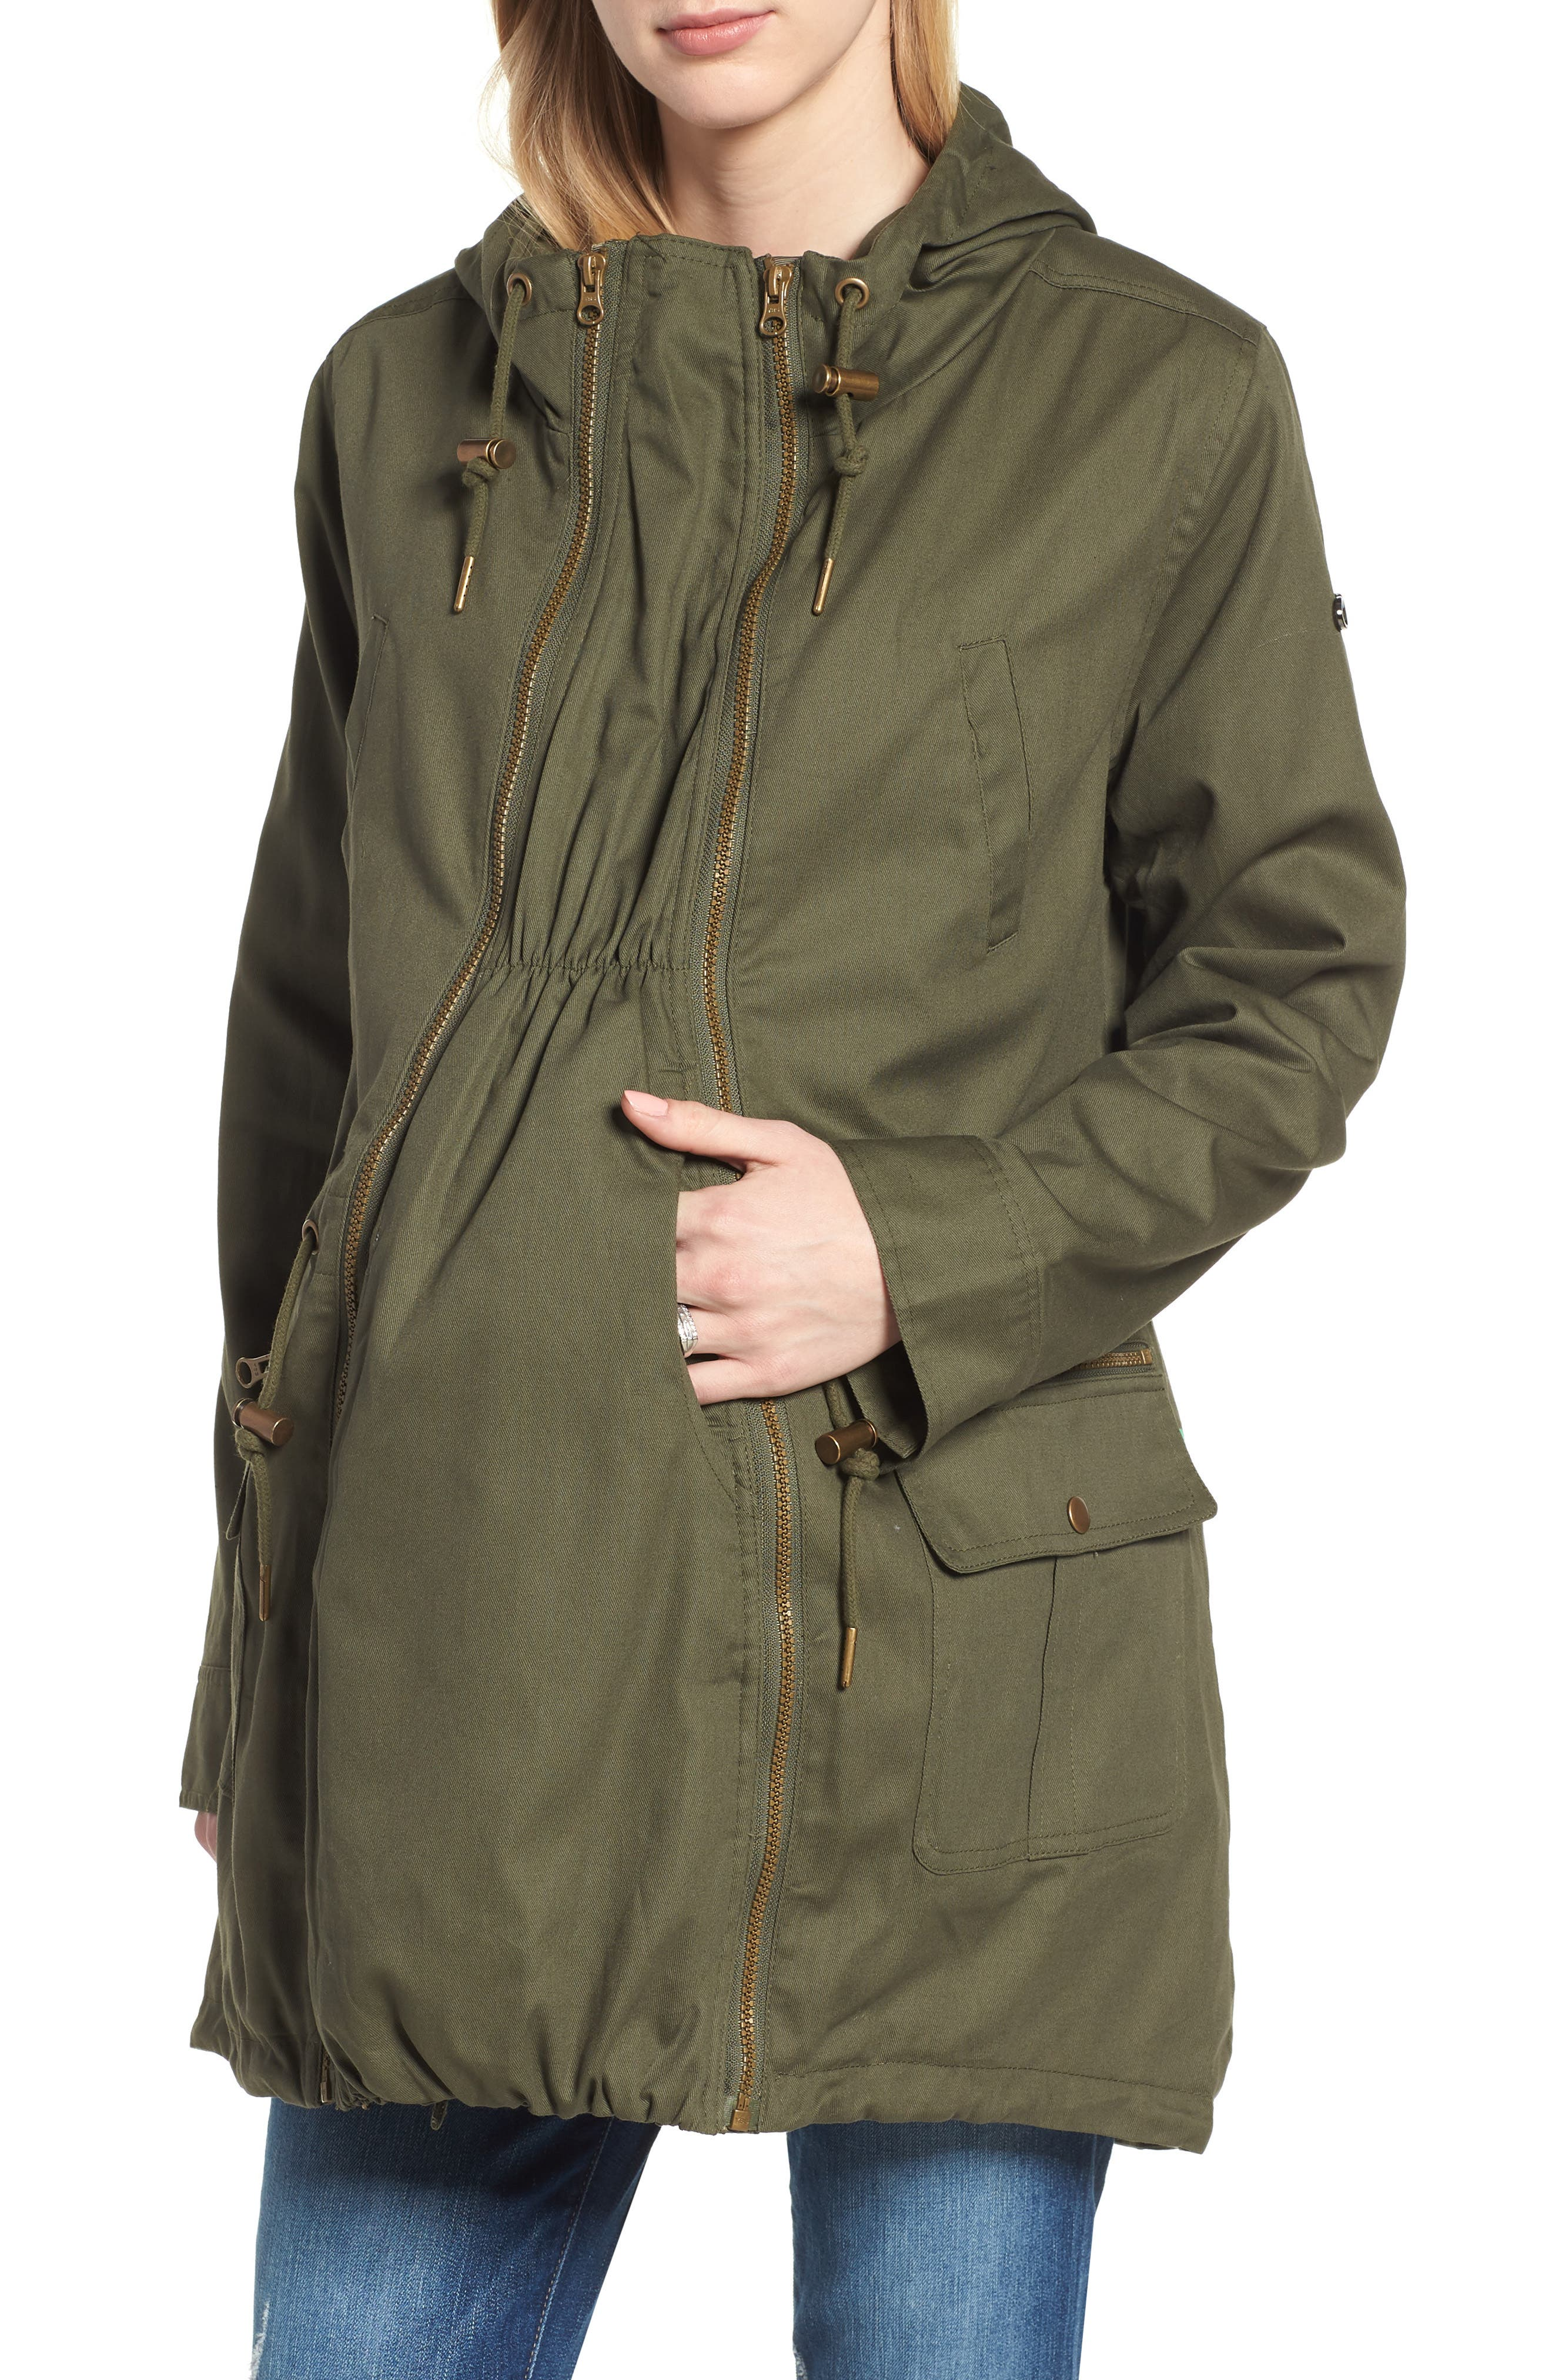 Convertible Military 3-in-1 Maternity/Nursing Jacket,                             Main thumbnail 1, color,                             KHAKI GREEN